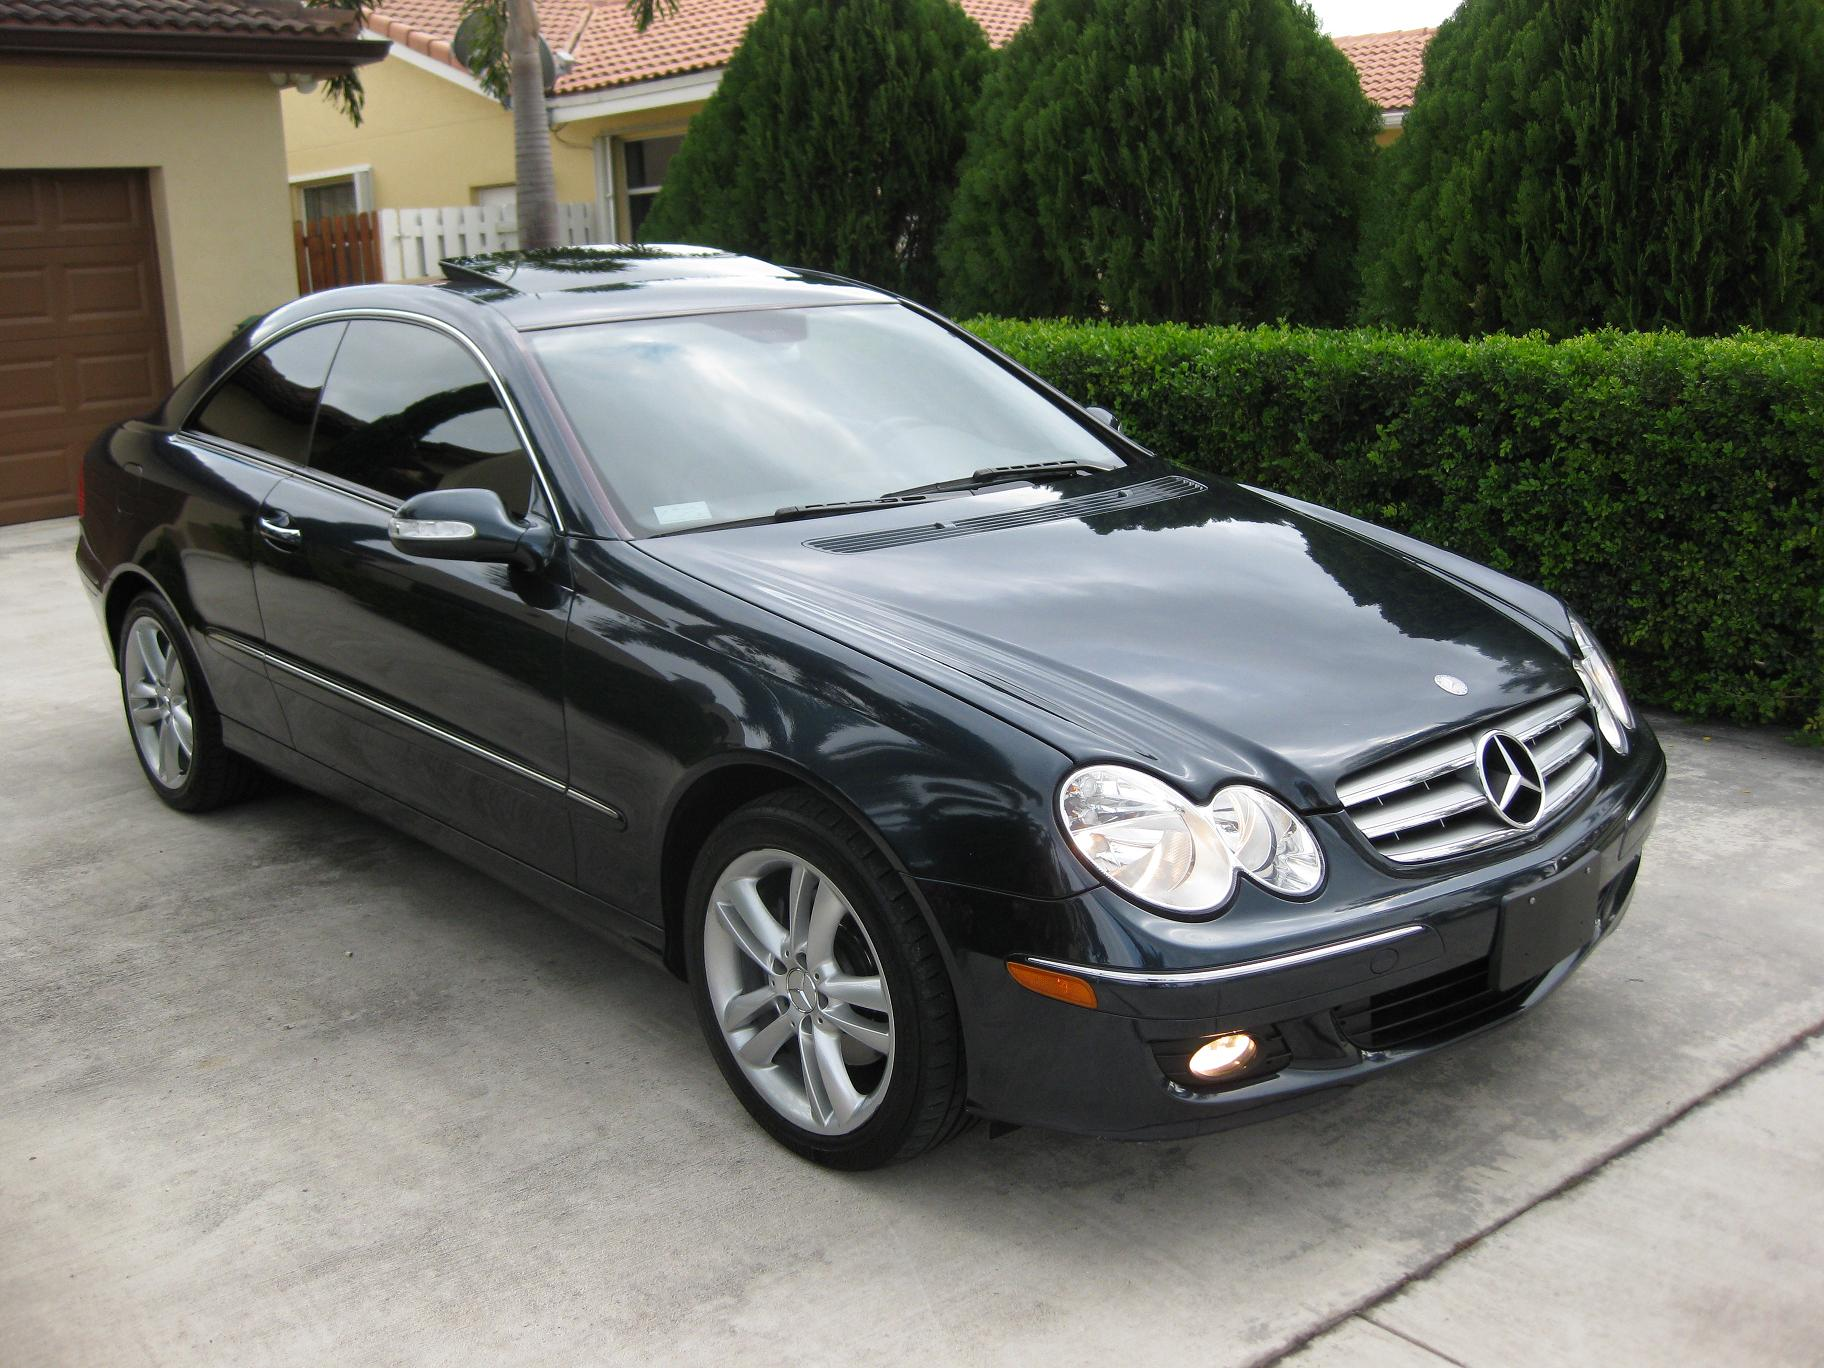 Mercedes benz clk 350 photos reviews news specs buy car for Mercedes benz clk 500